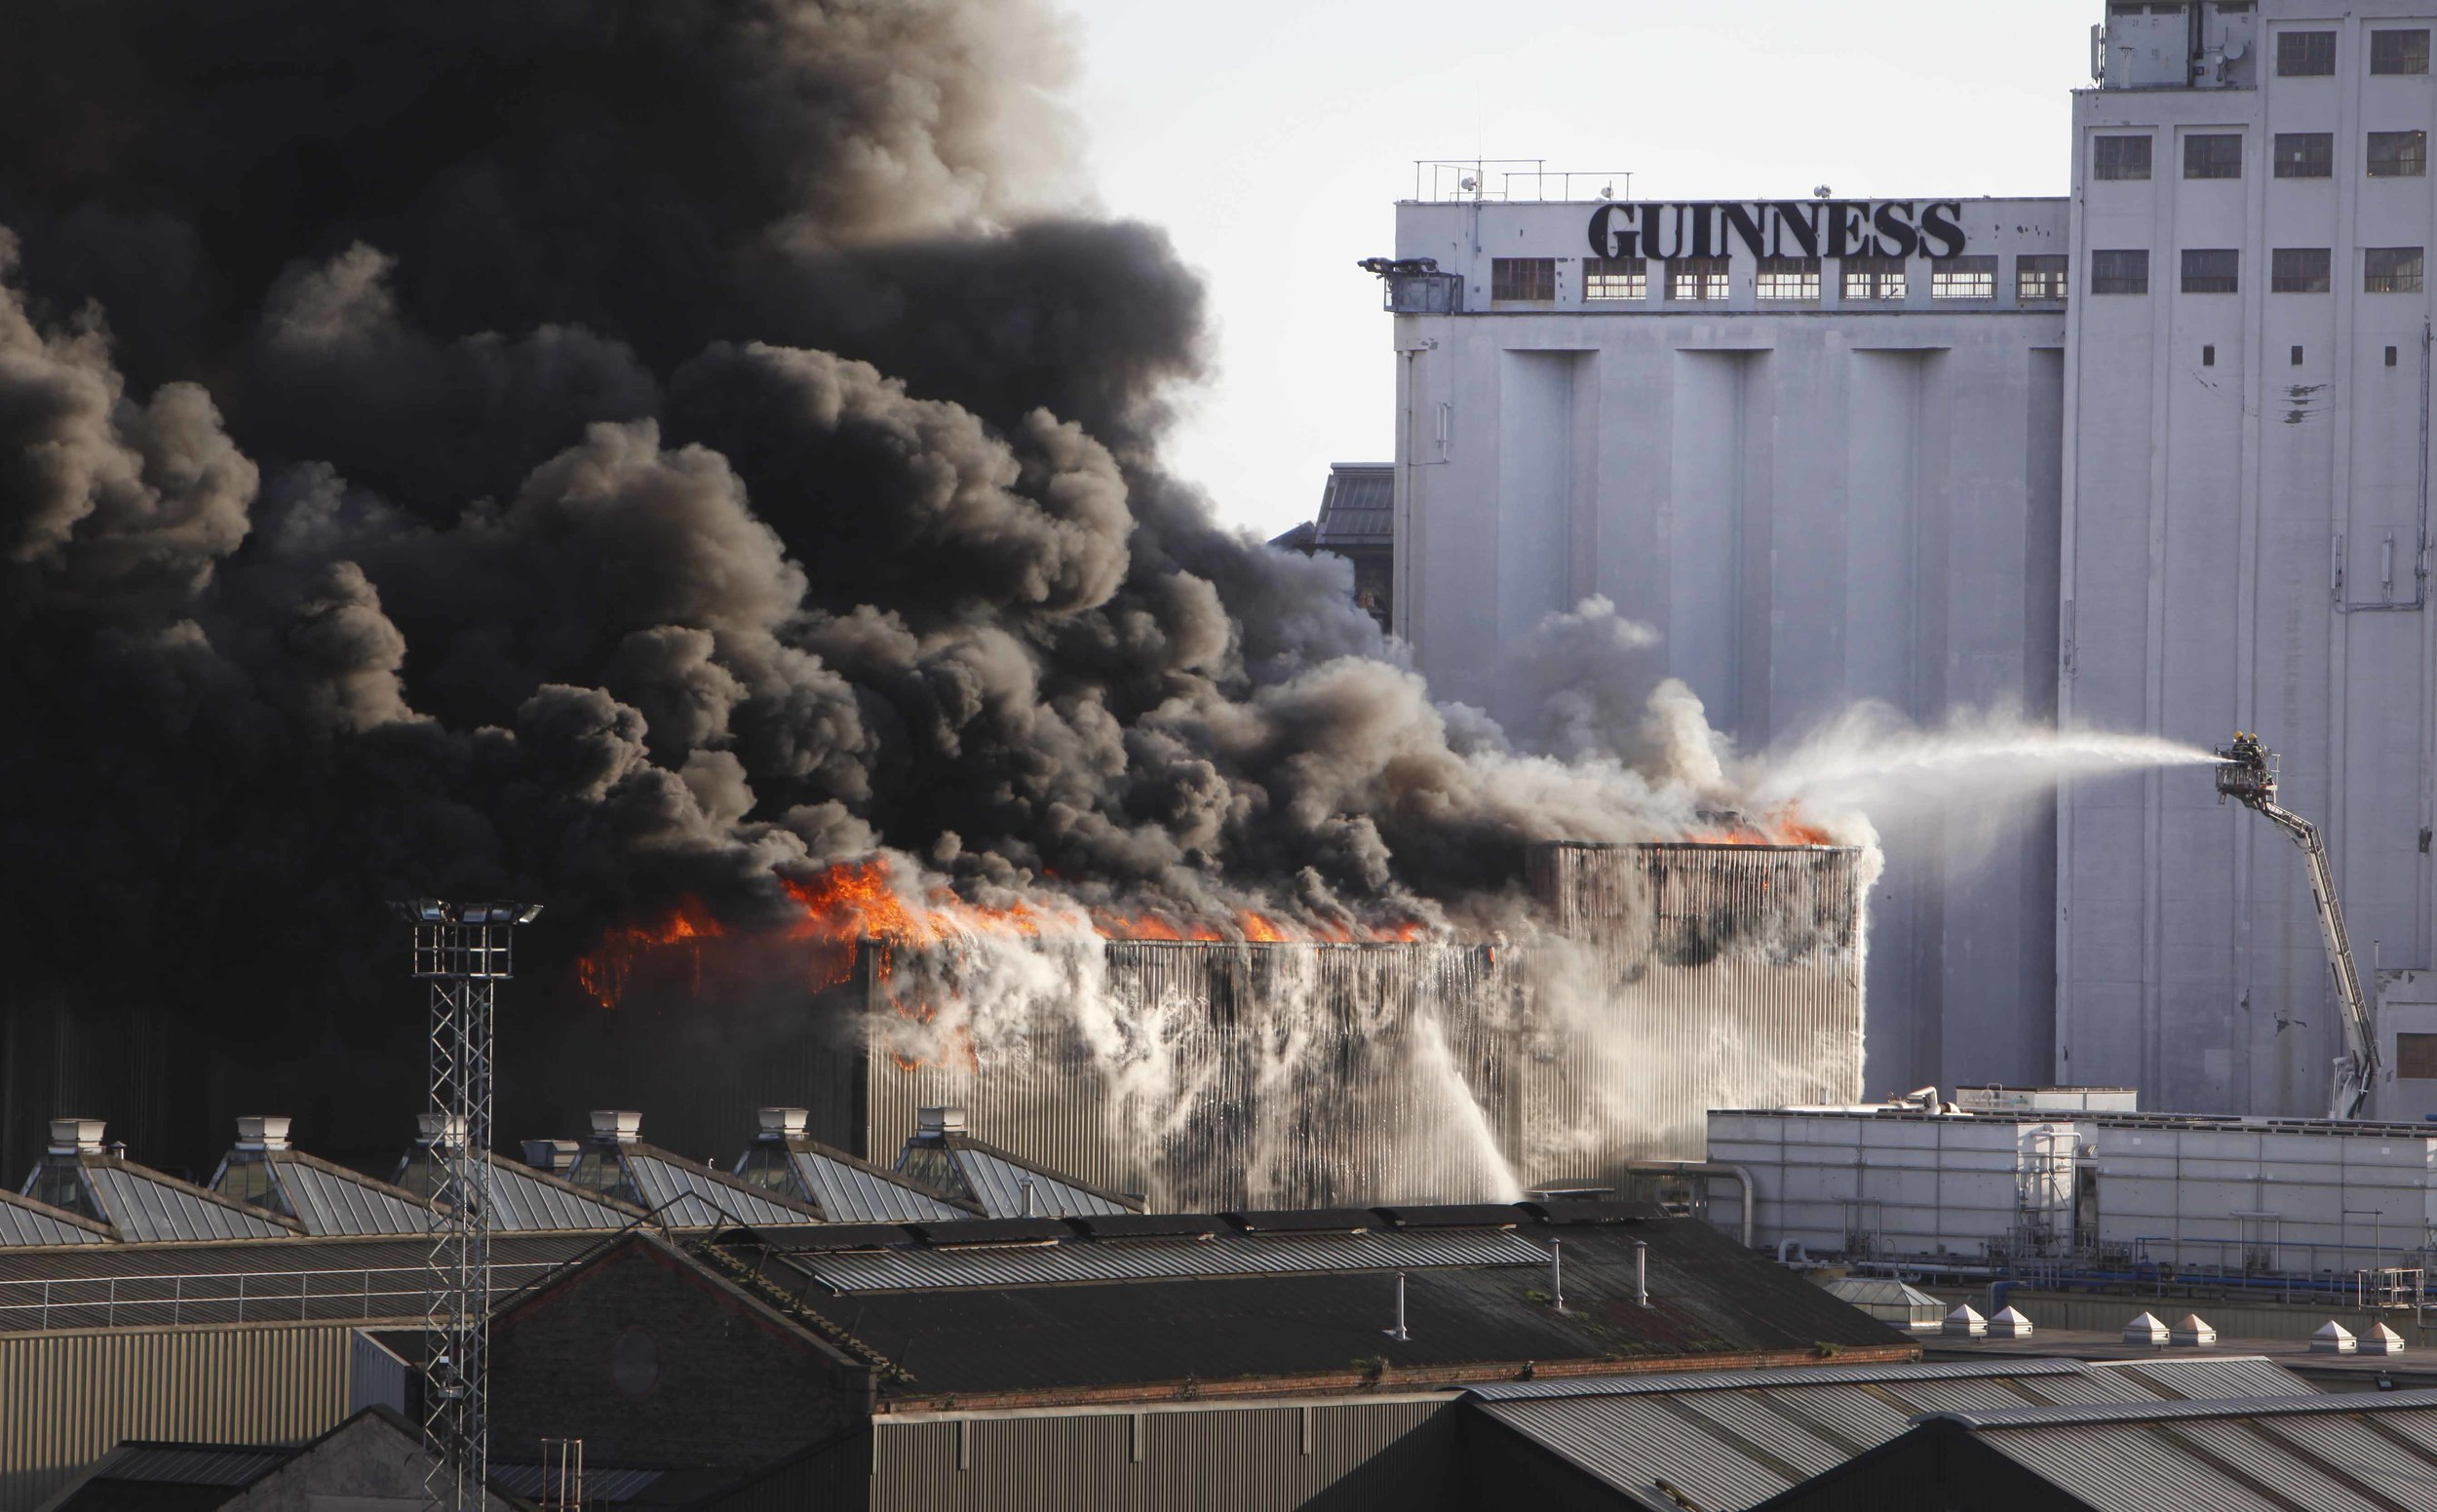 Fire engulfs the Guinness factory in Dublin